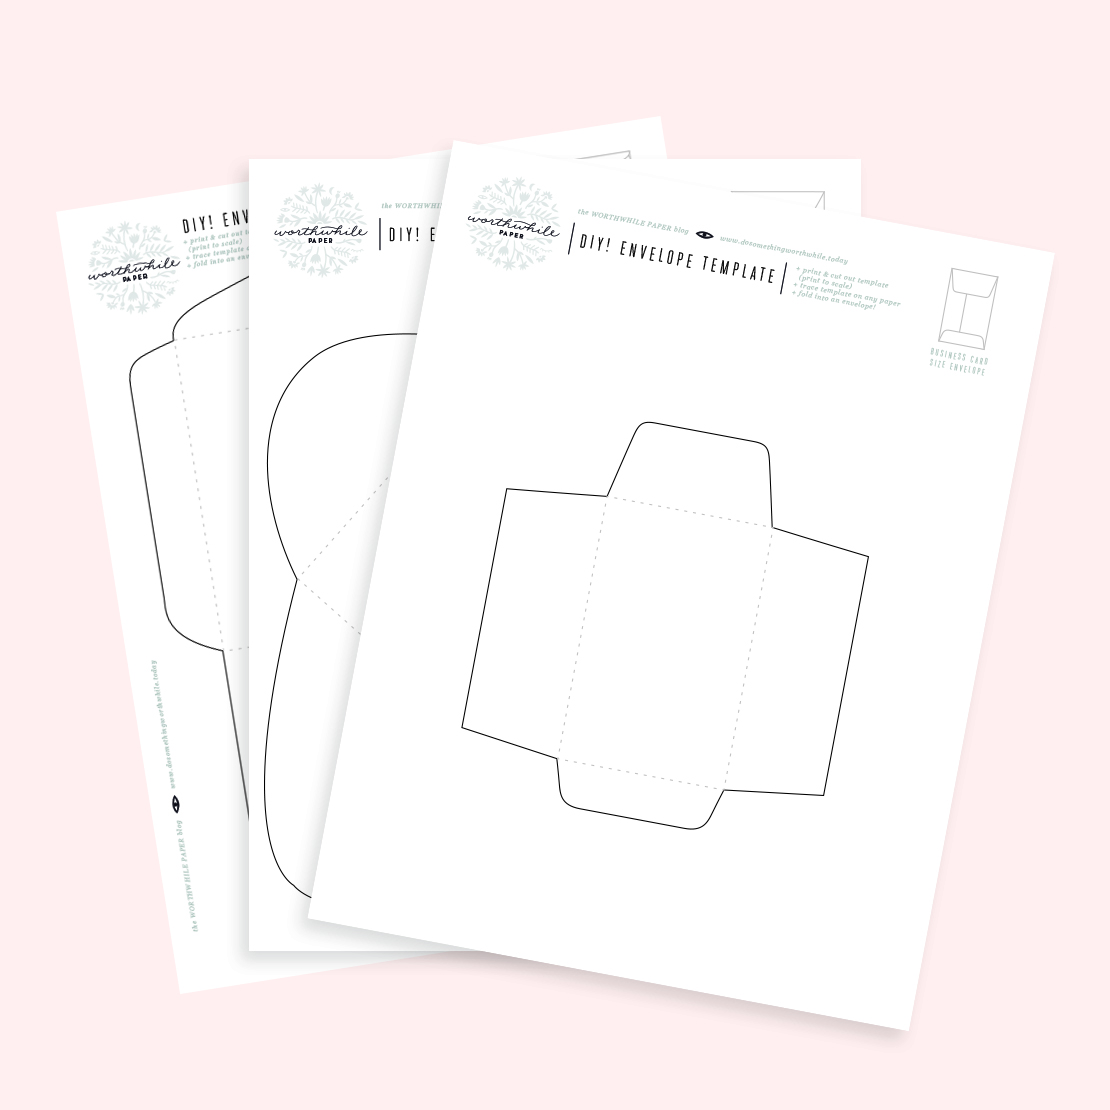 diy envelopes with free printable templates